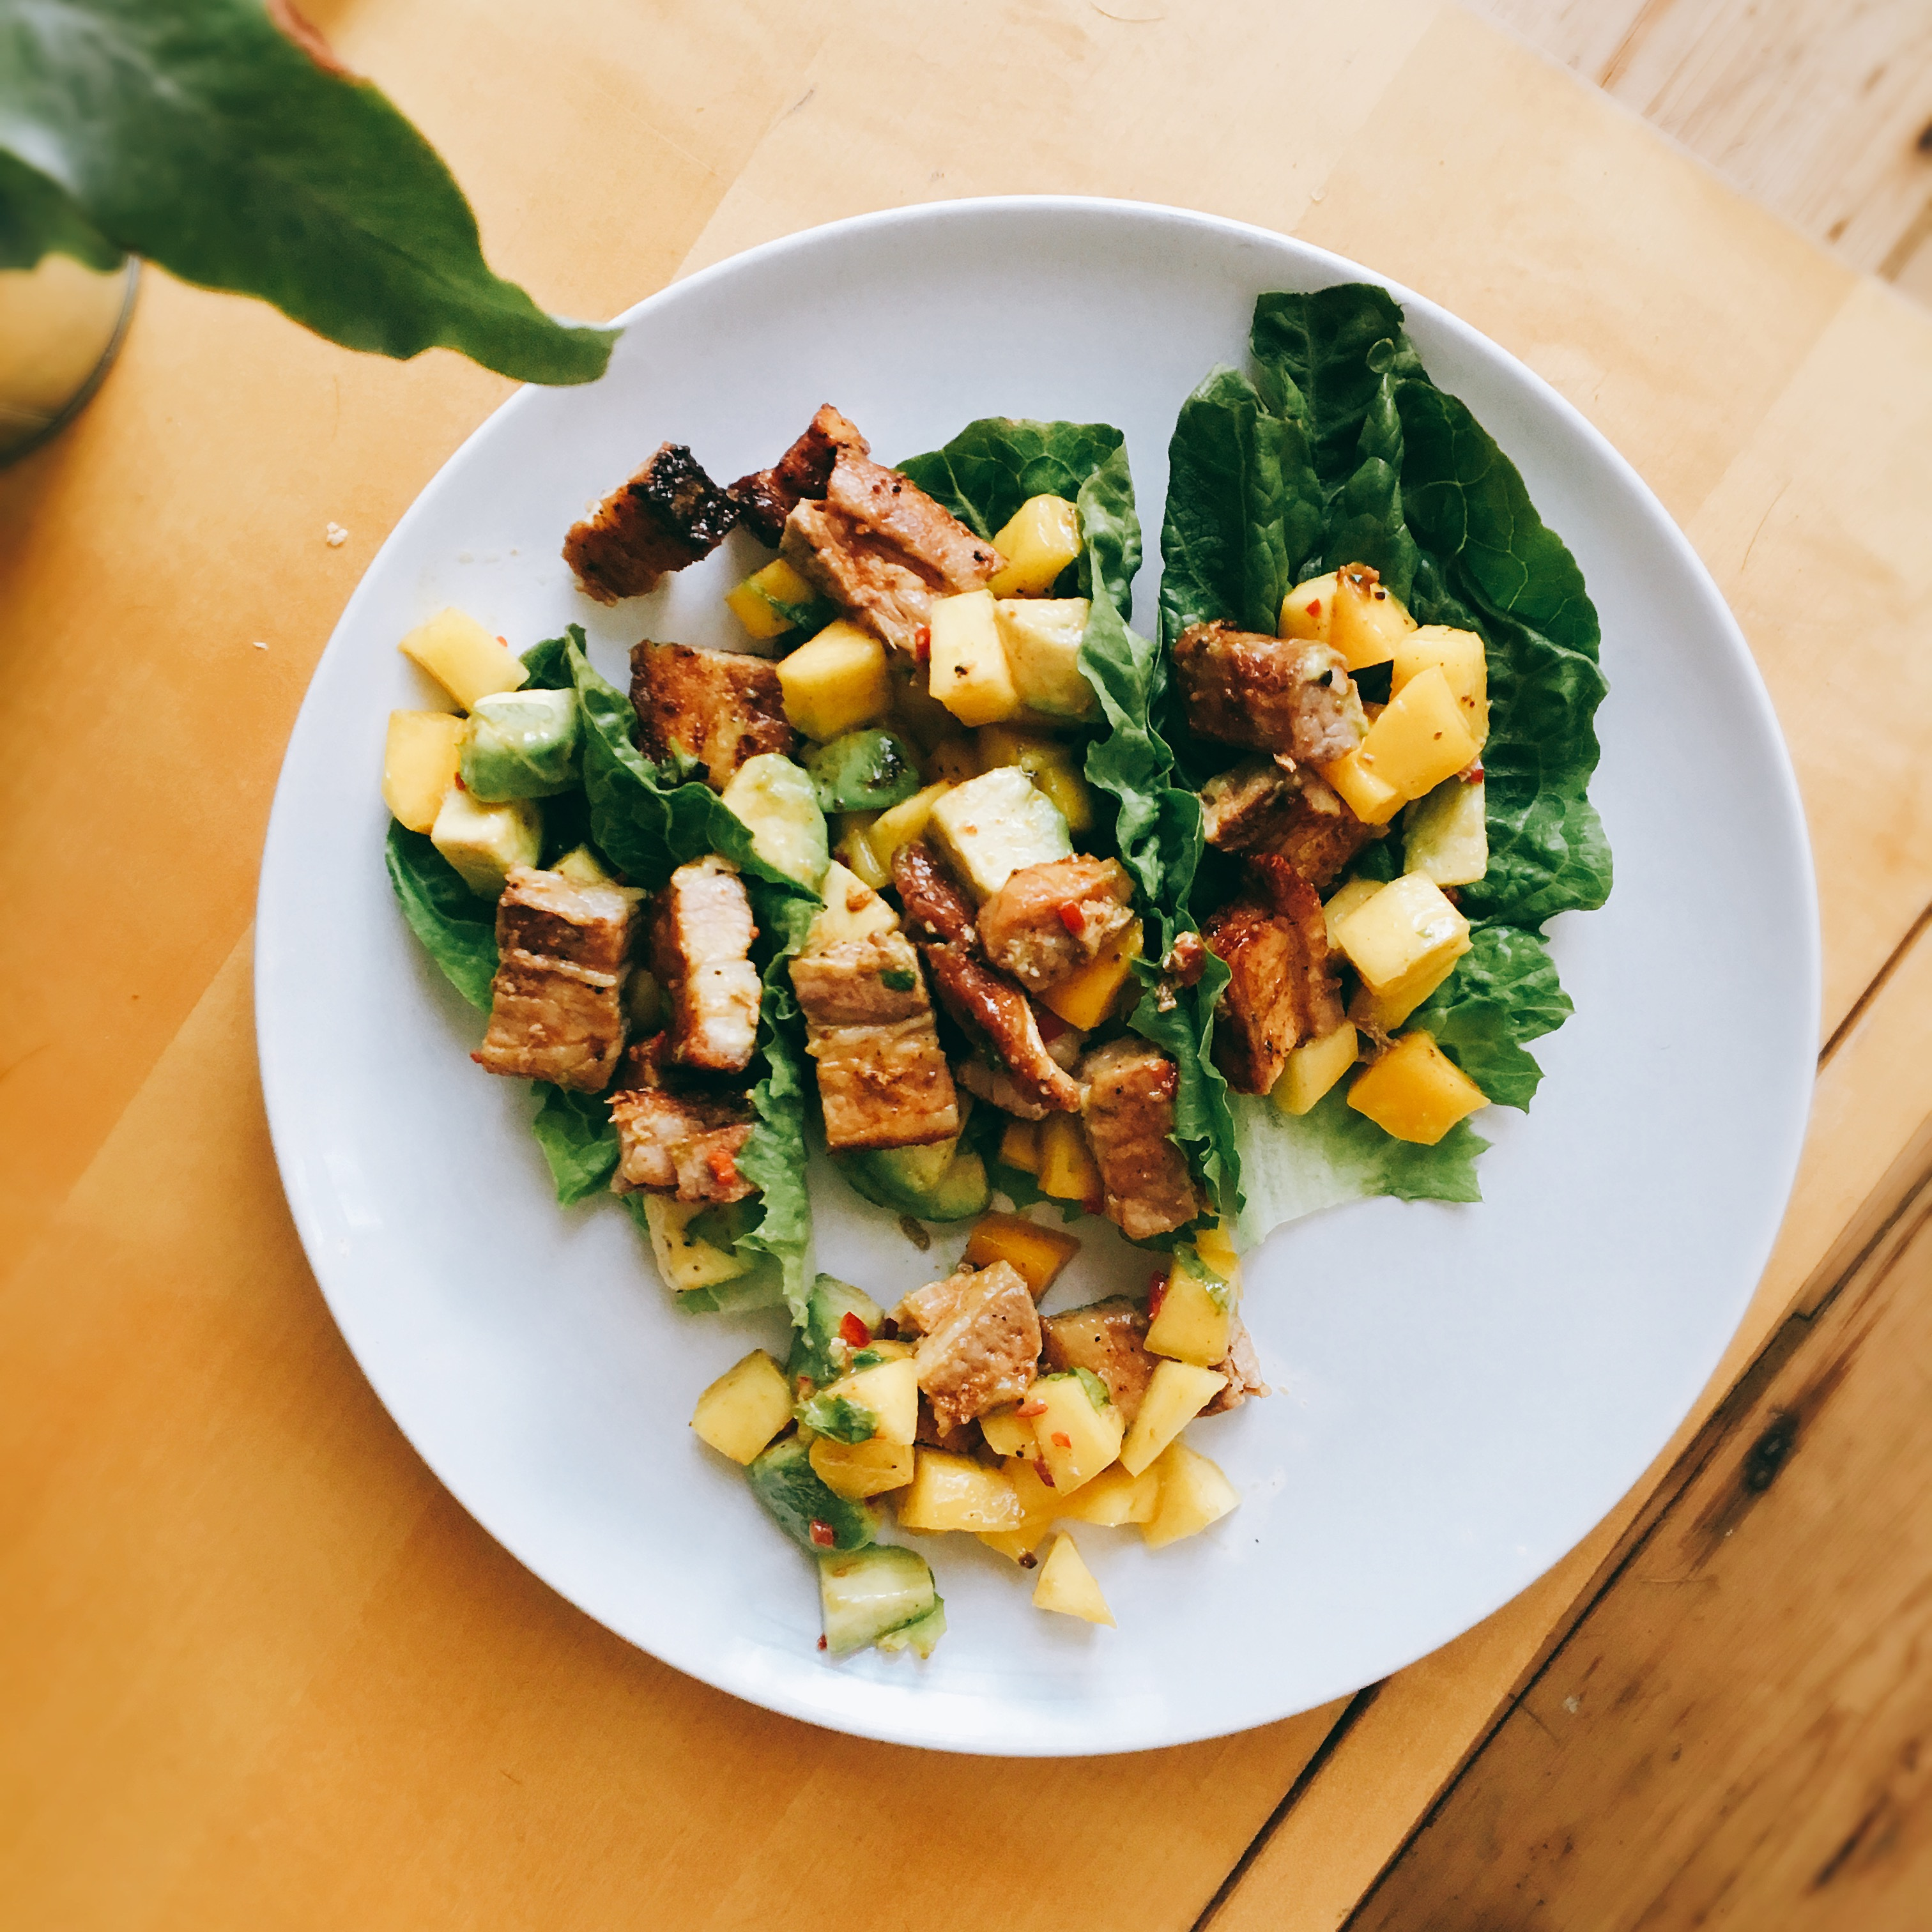 the wee food blogger© Whole30 Pork Tacos recipe